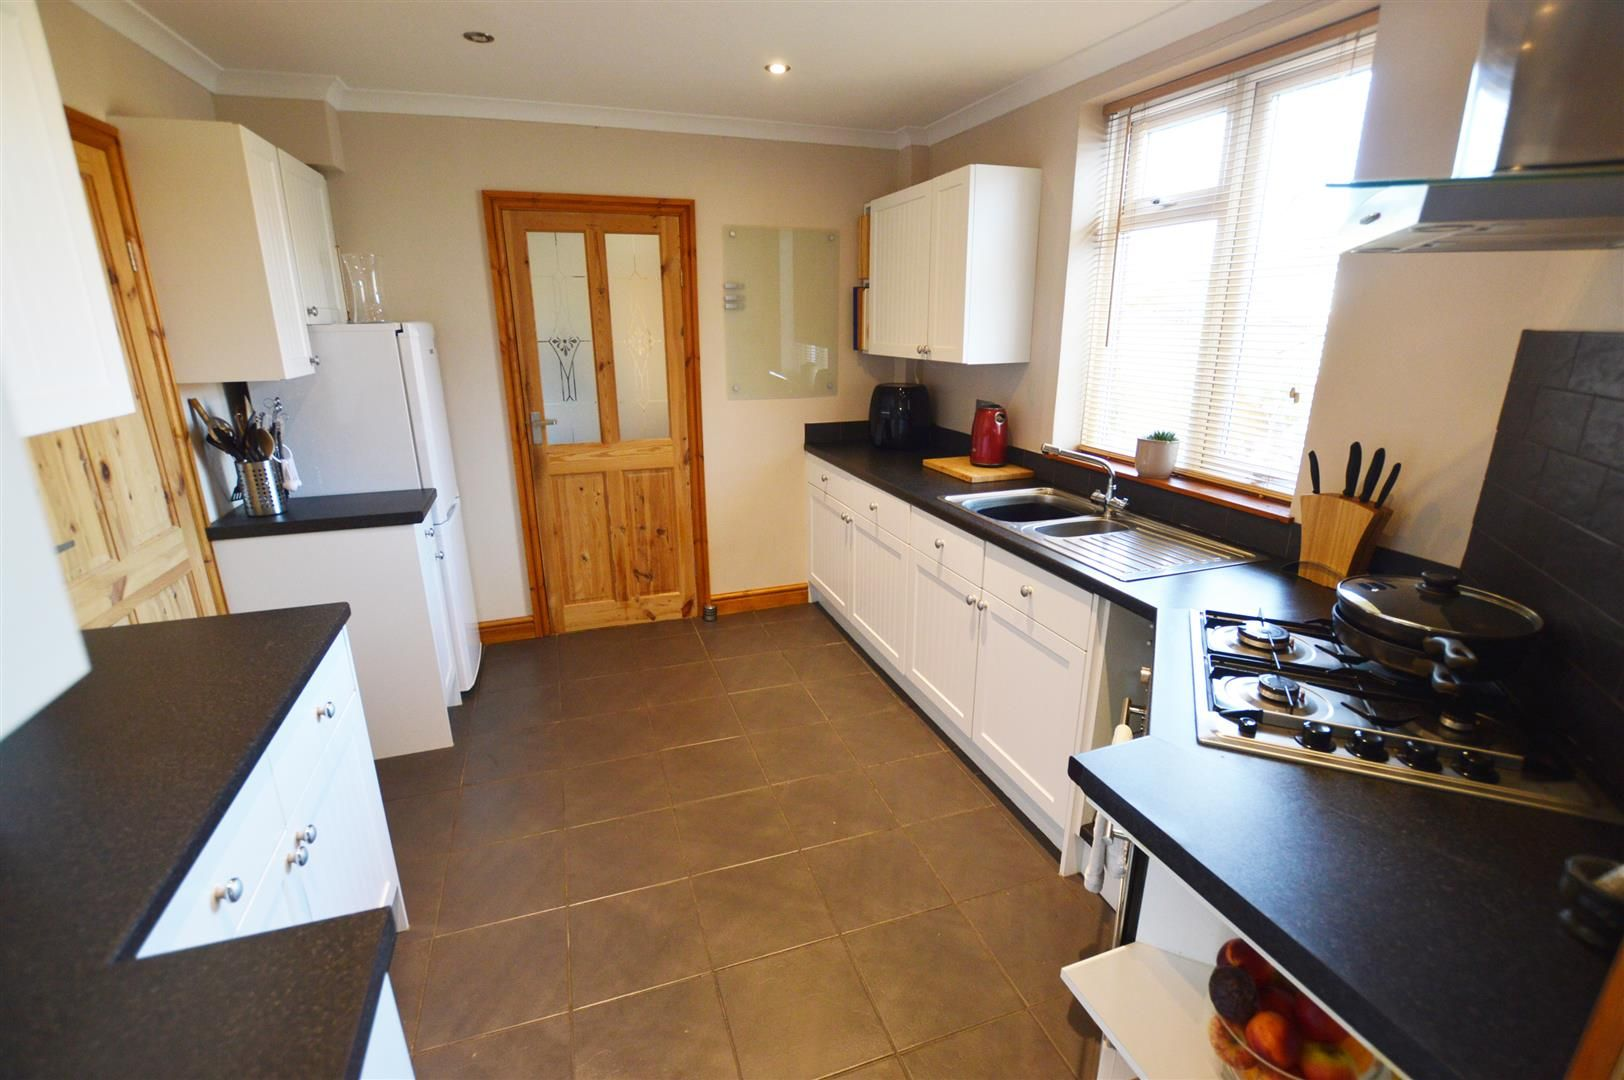 4 bed semi-detached for sale in Hereford  - Property Image 3